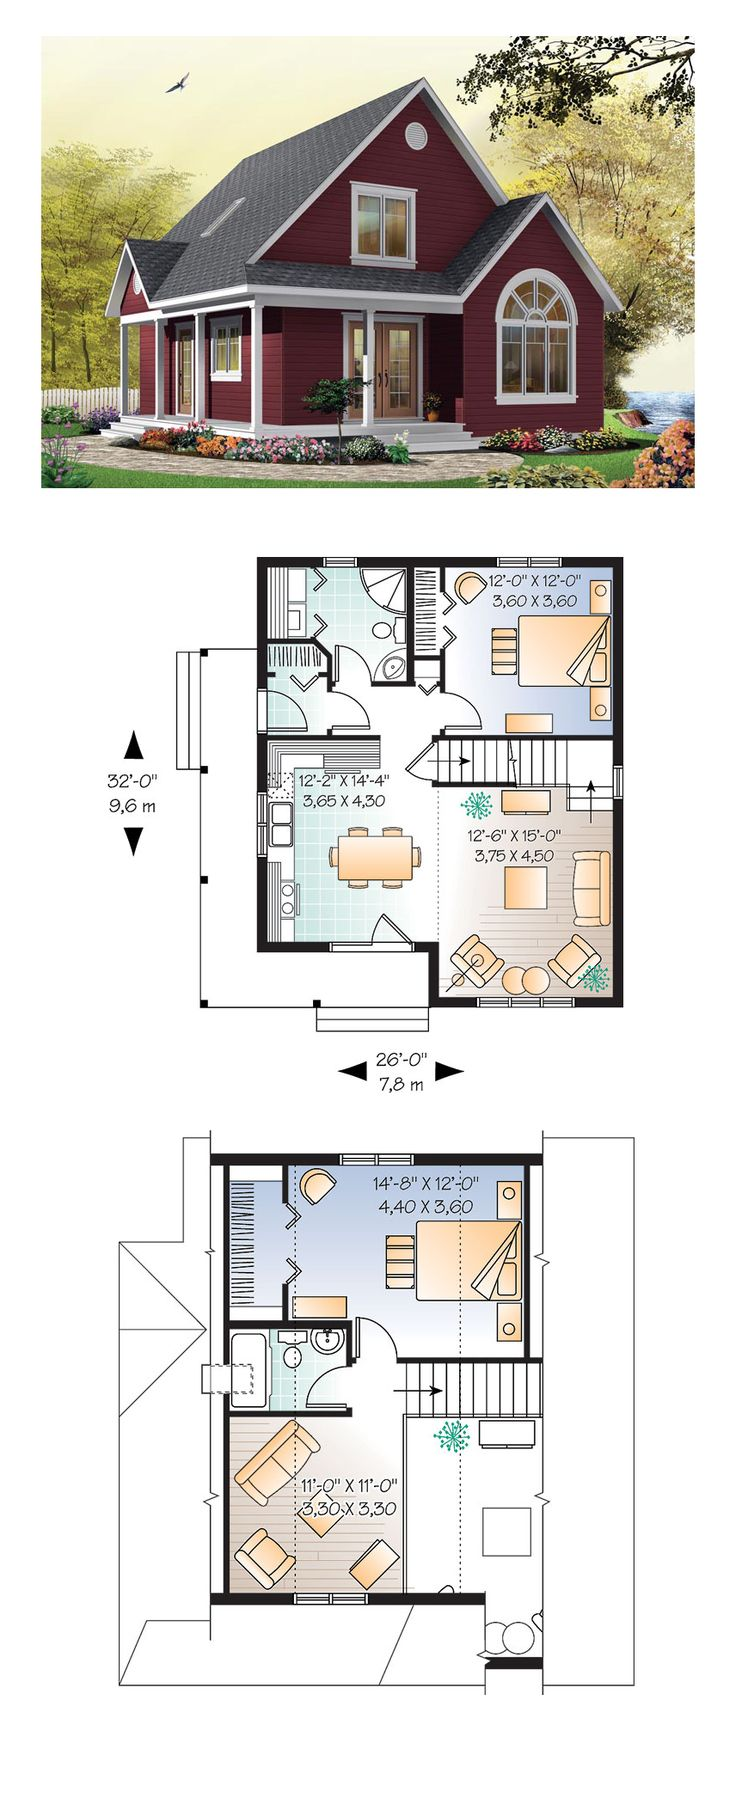 Cottage Style COOL House Plan ID  chp 28554   Total Living Area  1226. The 25  best Small house plans ideas on Pinterest   Small home